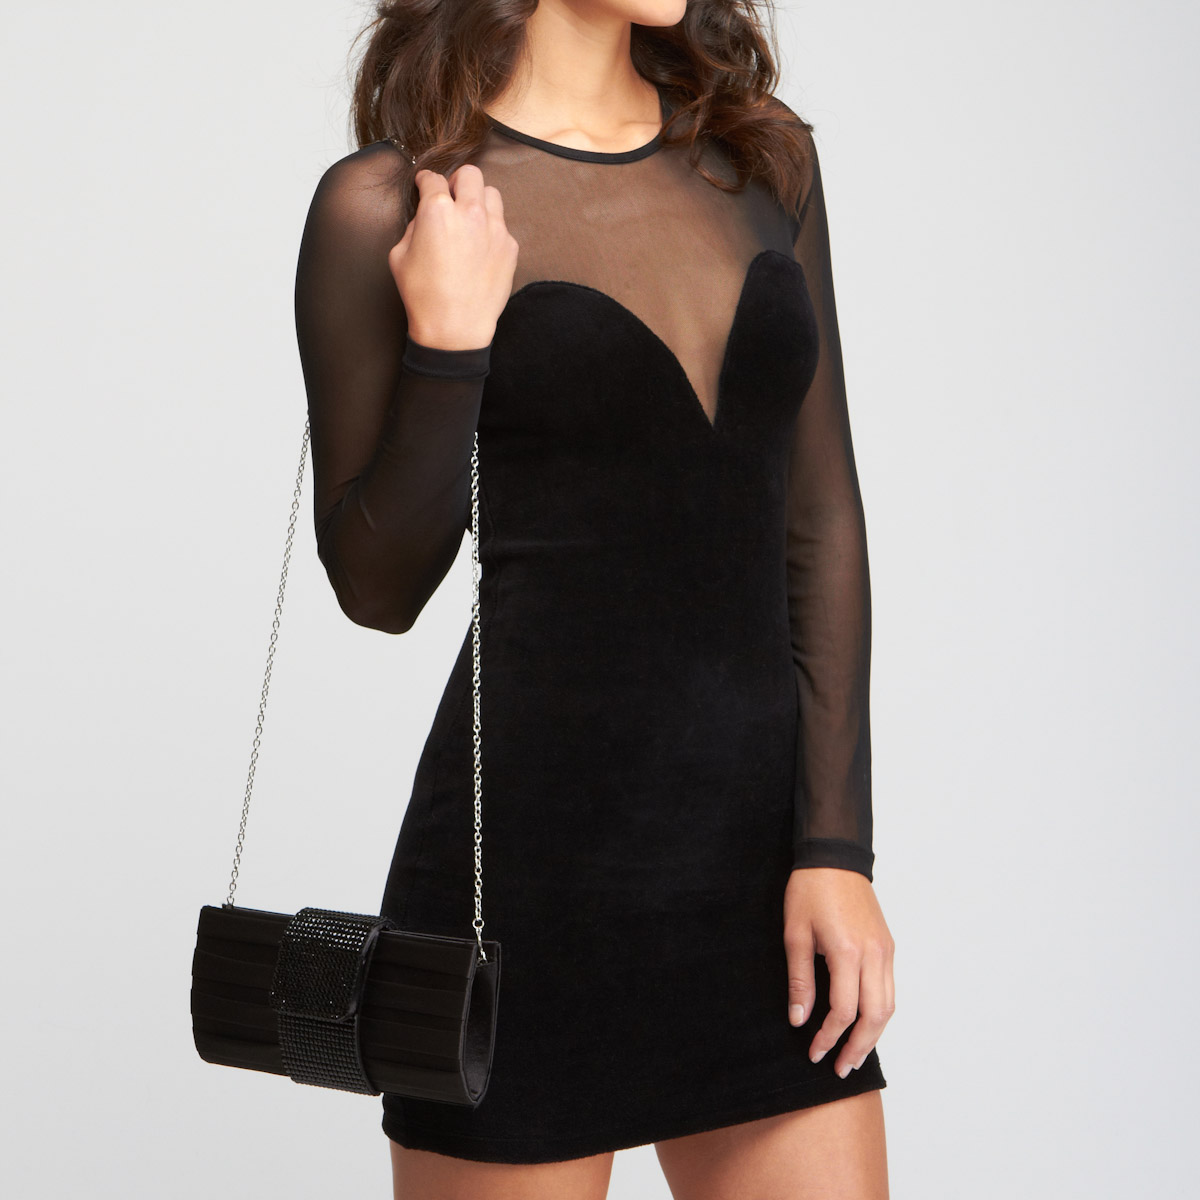 calexico women Results for women's clothing retail in calexico, ca get free custom quotes, customer reviews, prices, contact details, opening hours from calexico, ca based businesses with women's clothing retail keyword.